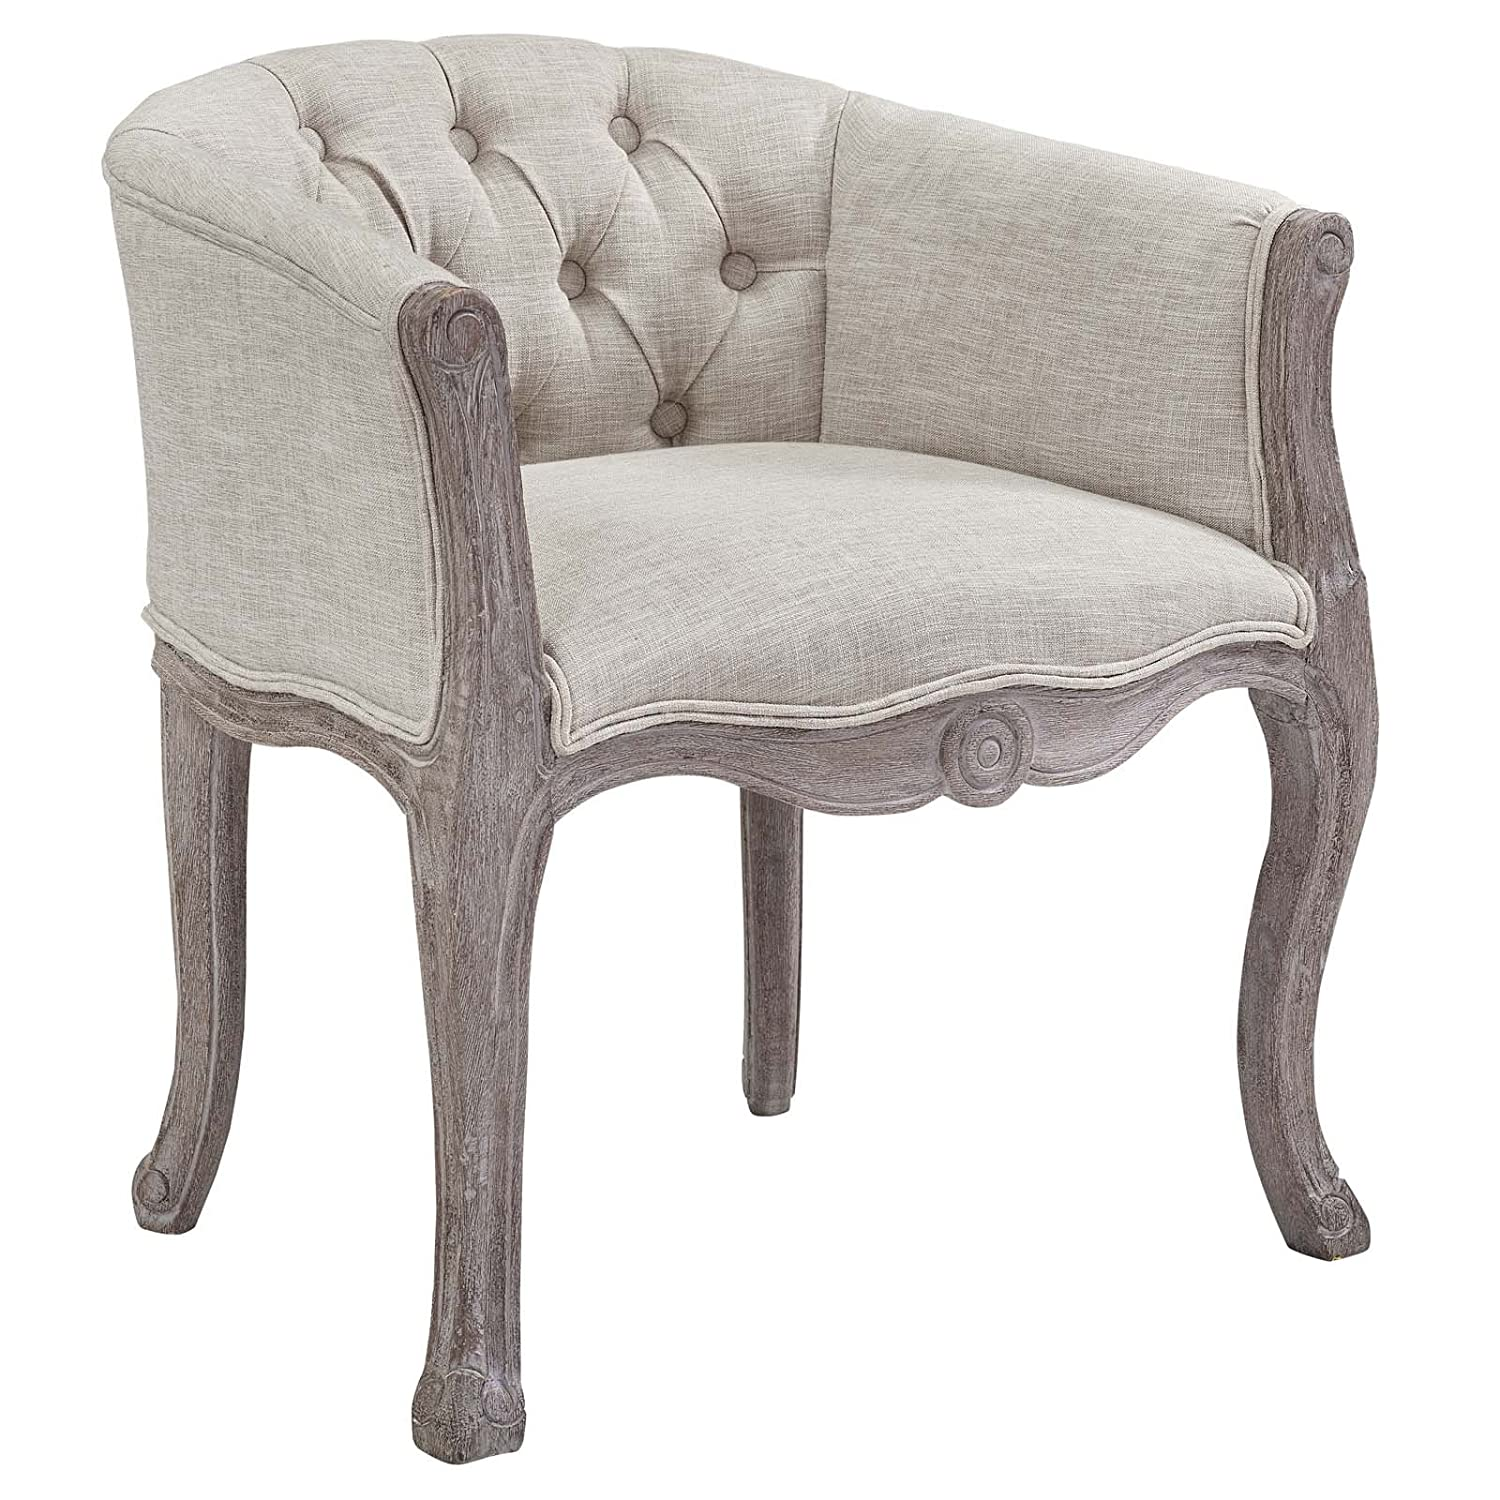 Modway EEI-2793-BEI Crown Vintage French Upholstered Fabric Dining Armchair, Fully Assembled One, Beige